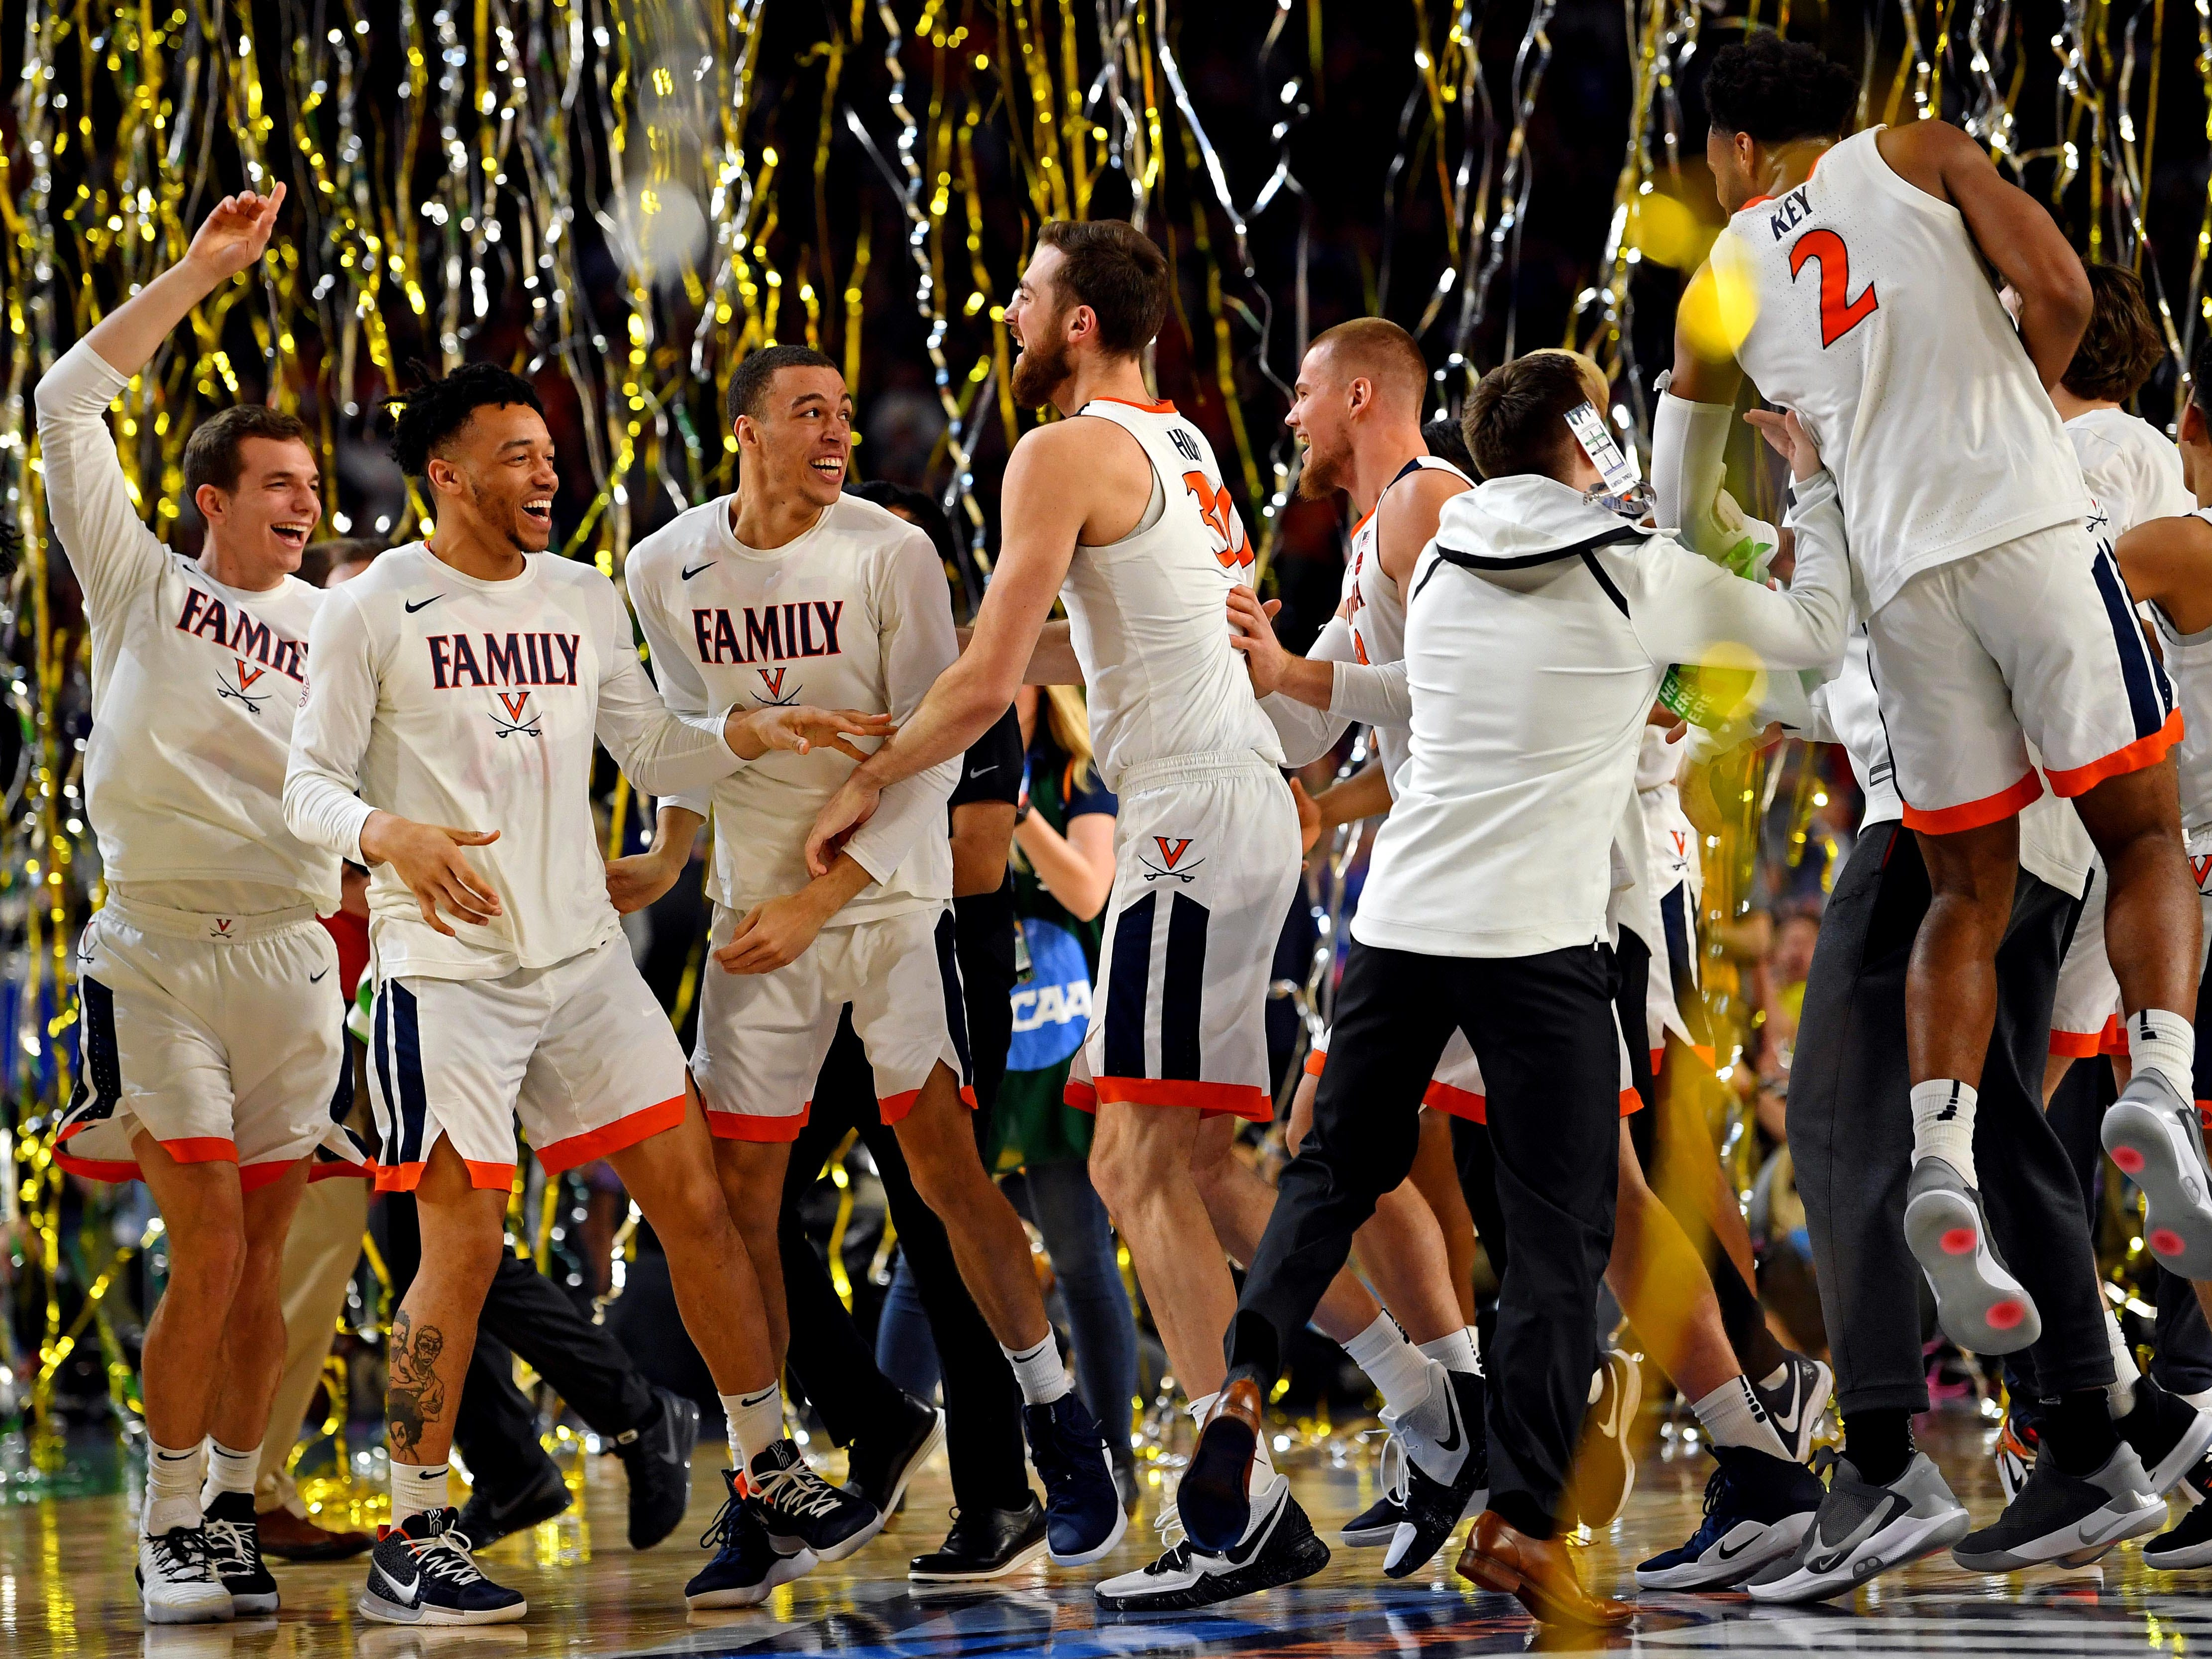 Virginia players celebrate after winning the national title game.